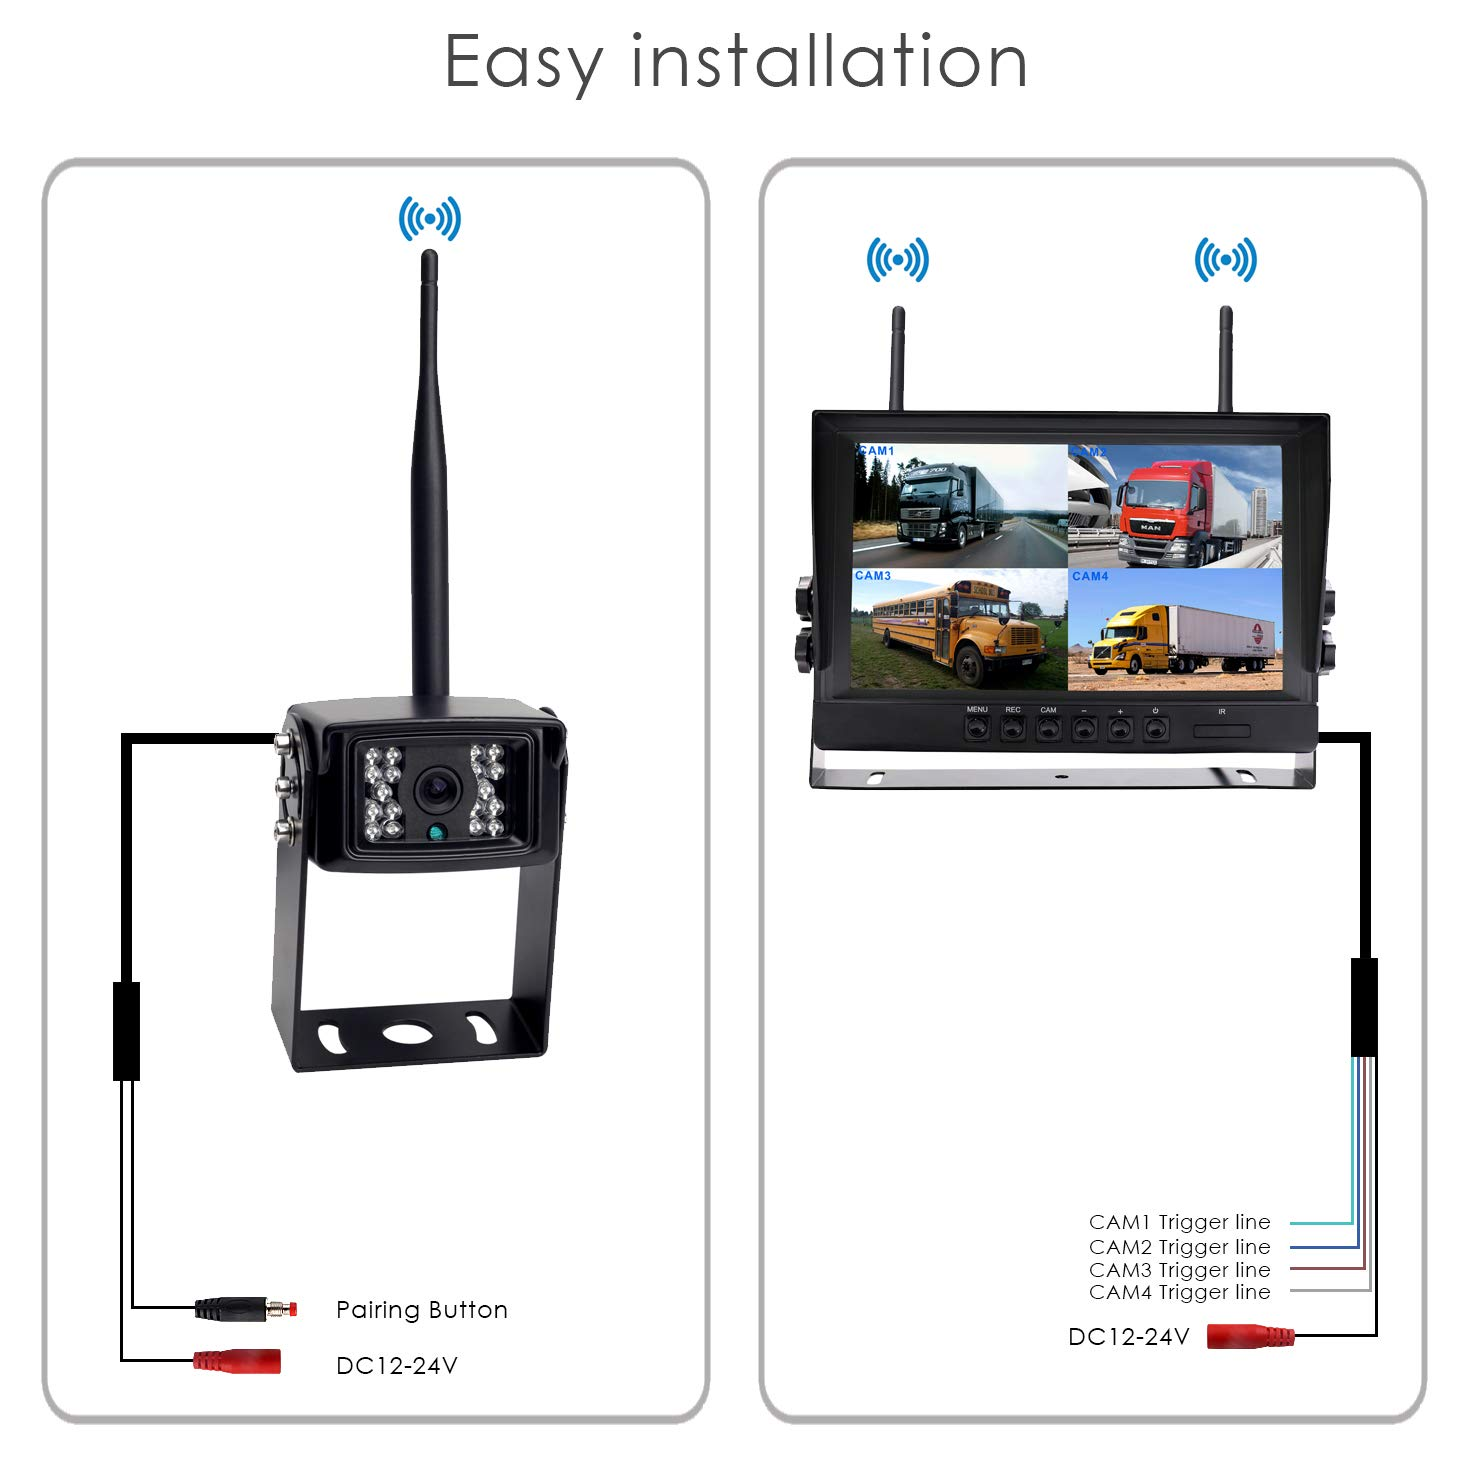 "Trucks CAMONS Digital Wireless Backup Camera for RV 7/"" Quad Split No Flicker, Built-in DVR 120/°HD Night Vision IP68 Waterproof Camera Rear//Side//Front with Mic Shenzhen Topwell Electronics Co Trailer Backup Camera with Monitor Ltd T-DW-7150R"